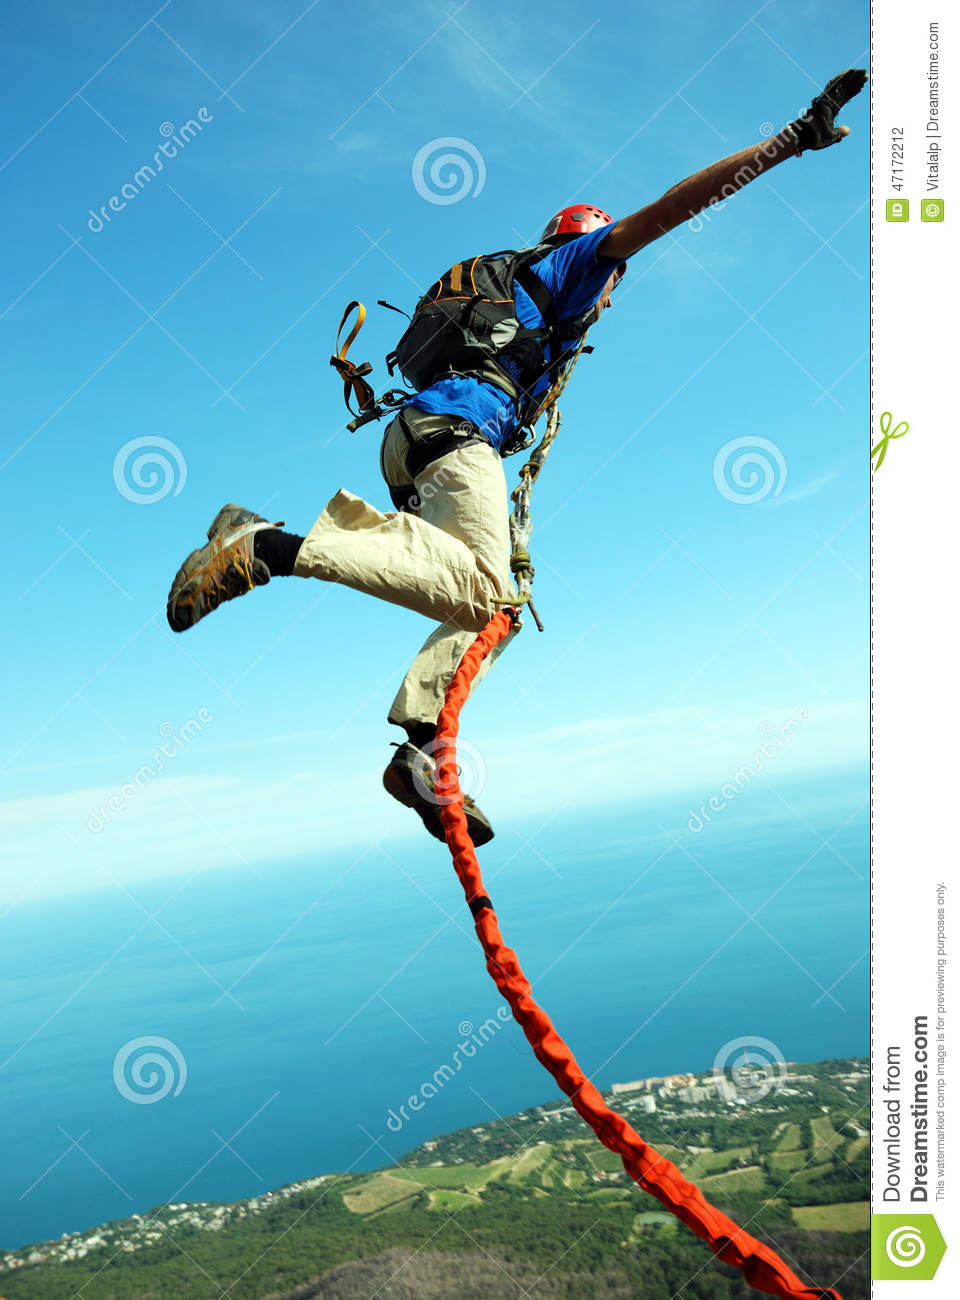 ed00b2fc0895 Jump Off A Cliff With A Rope.Bungee Jumping Stock Photo - Image of ...